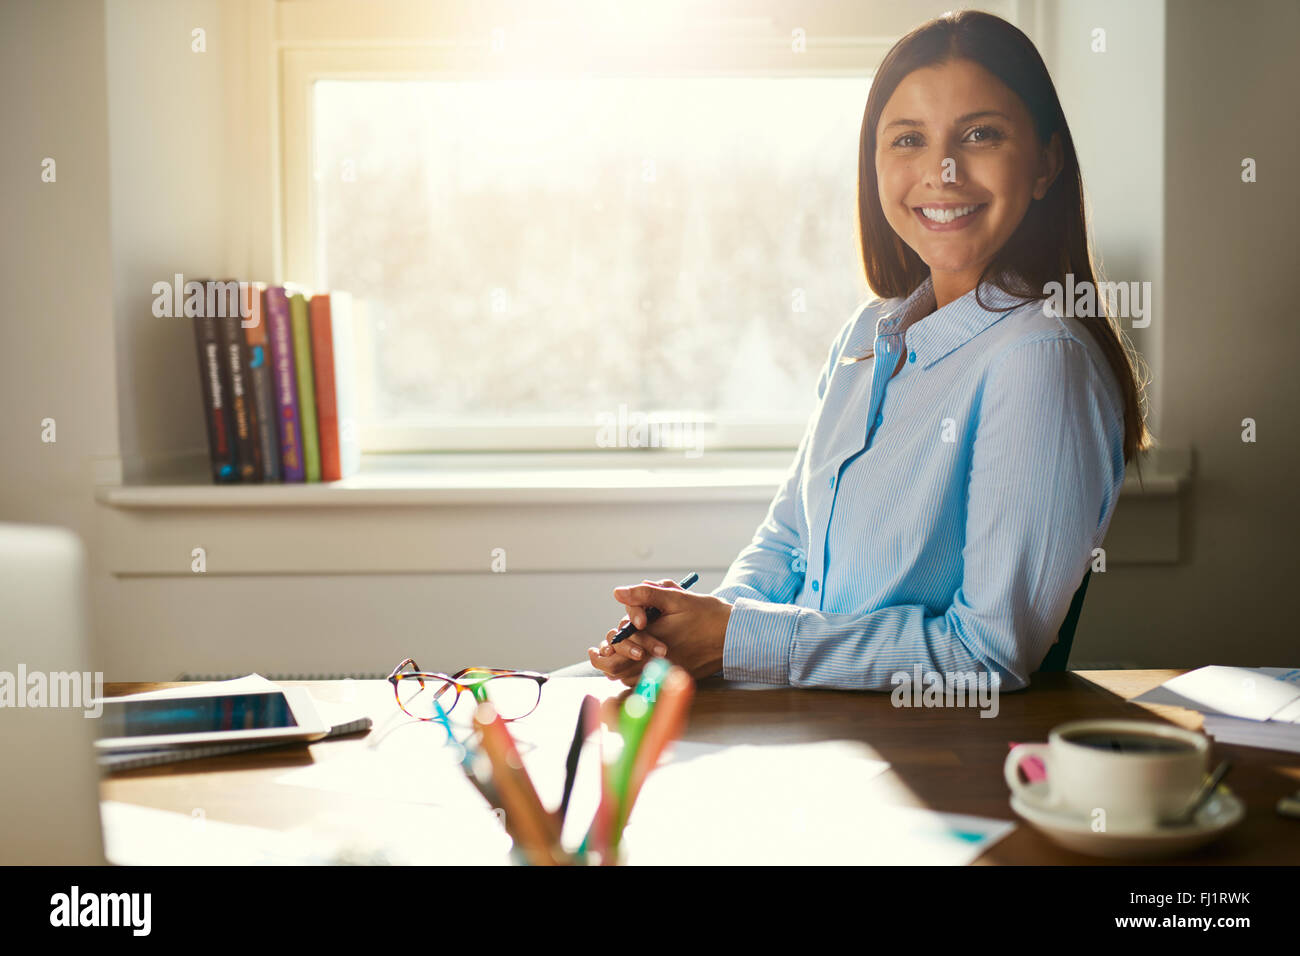 Successful business woman sitting at her desk in a office smiling at the camera - Stock Image